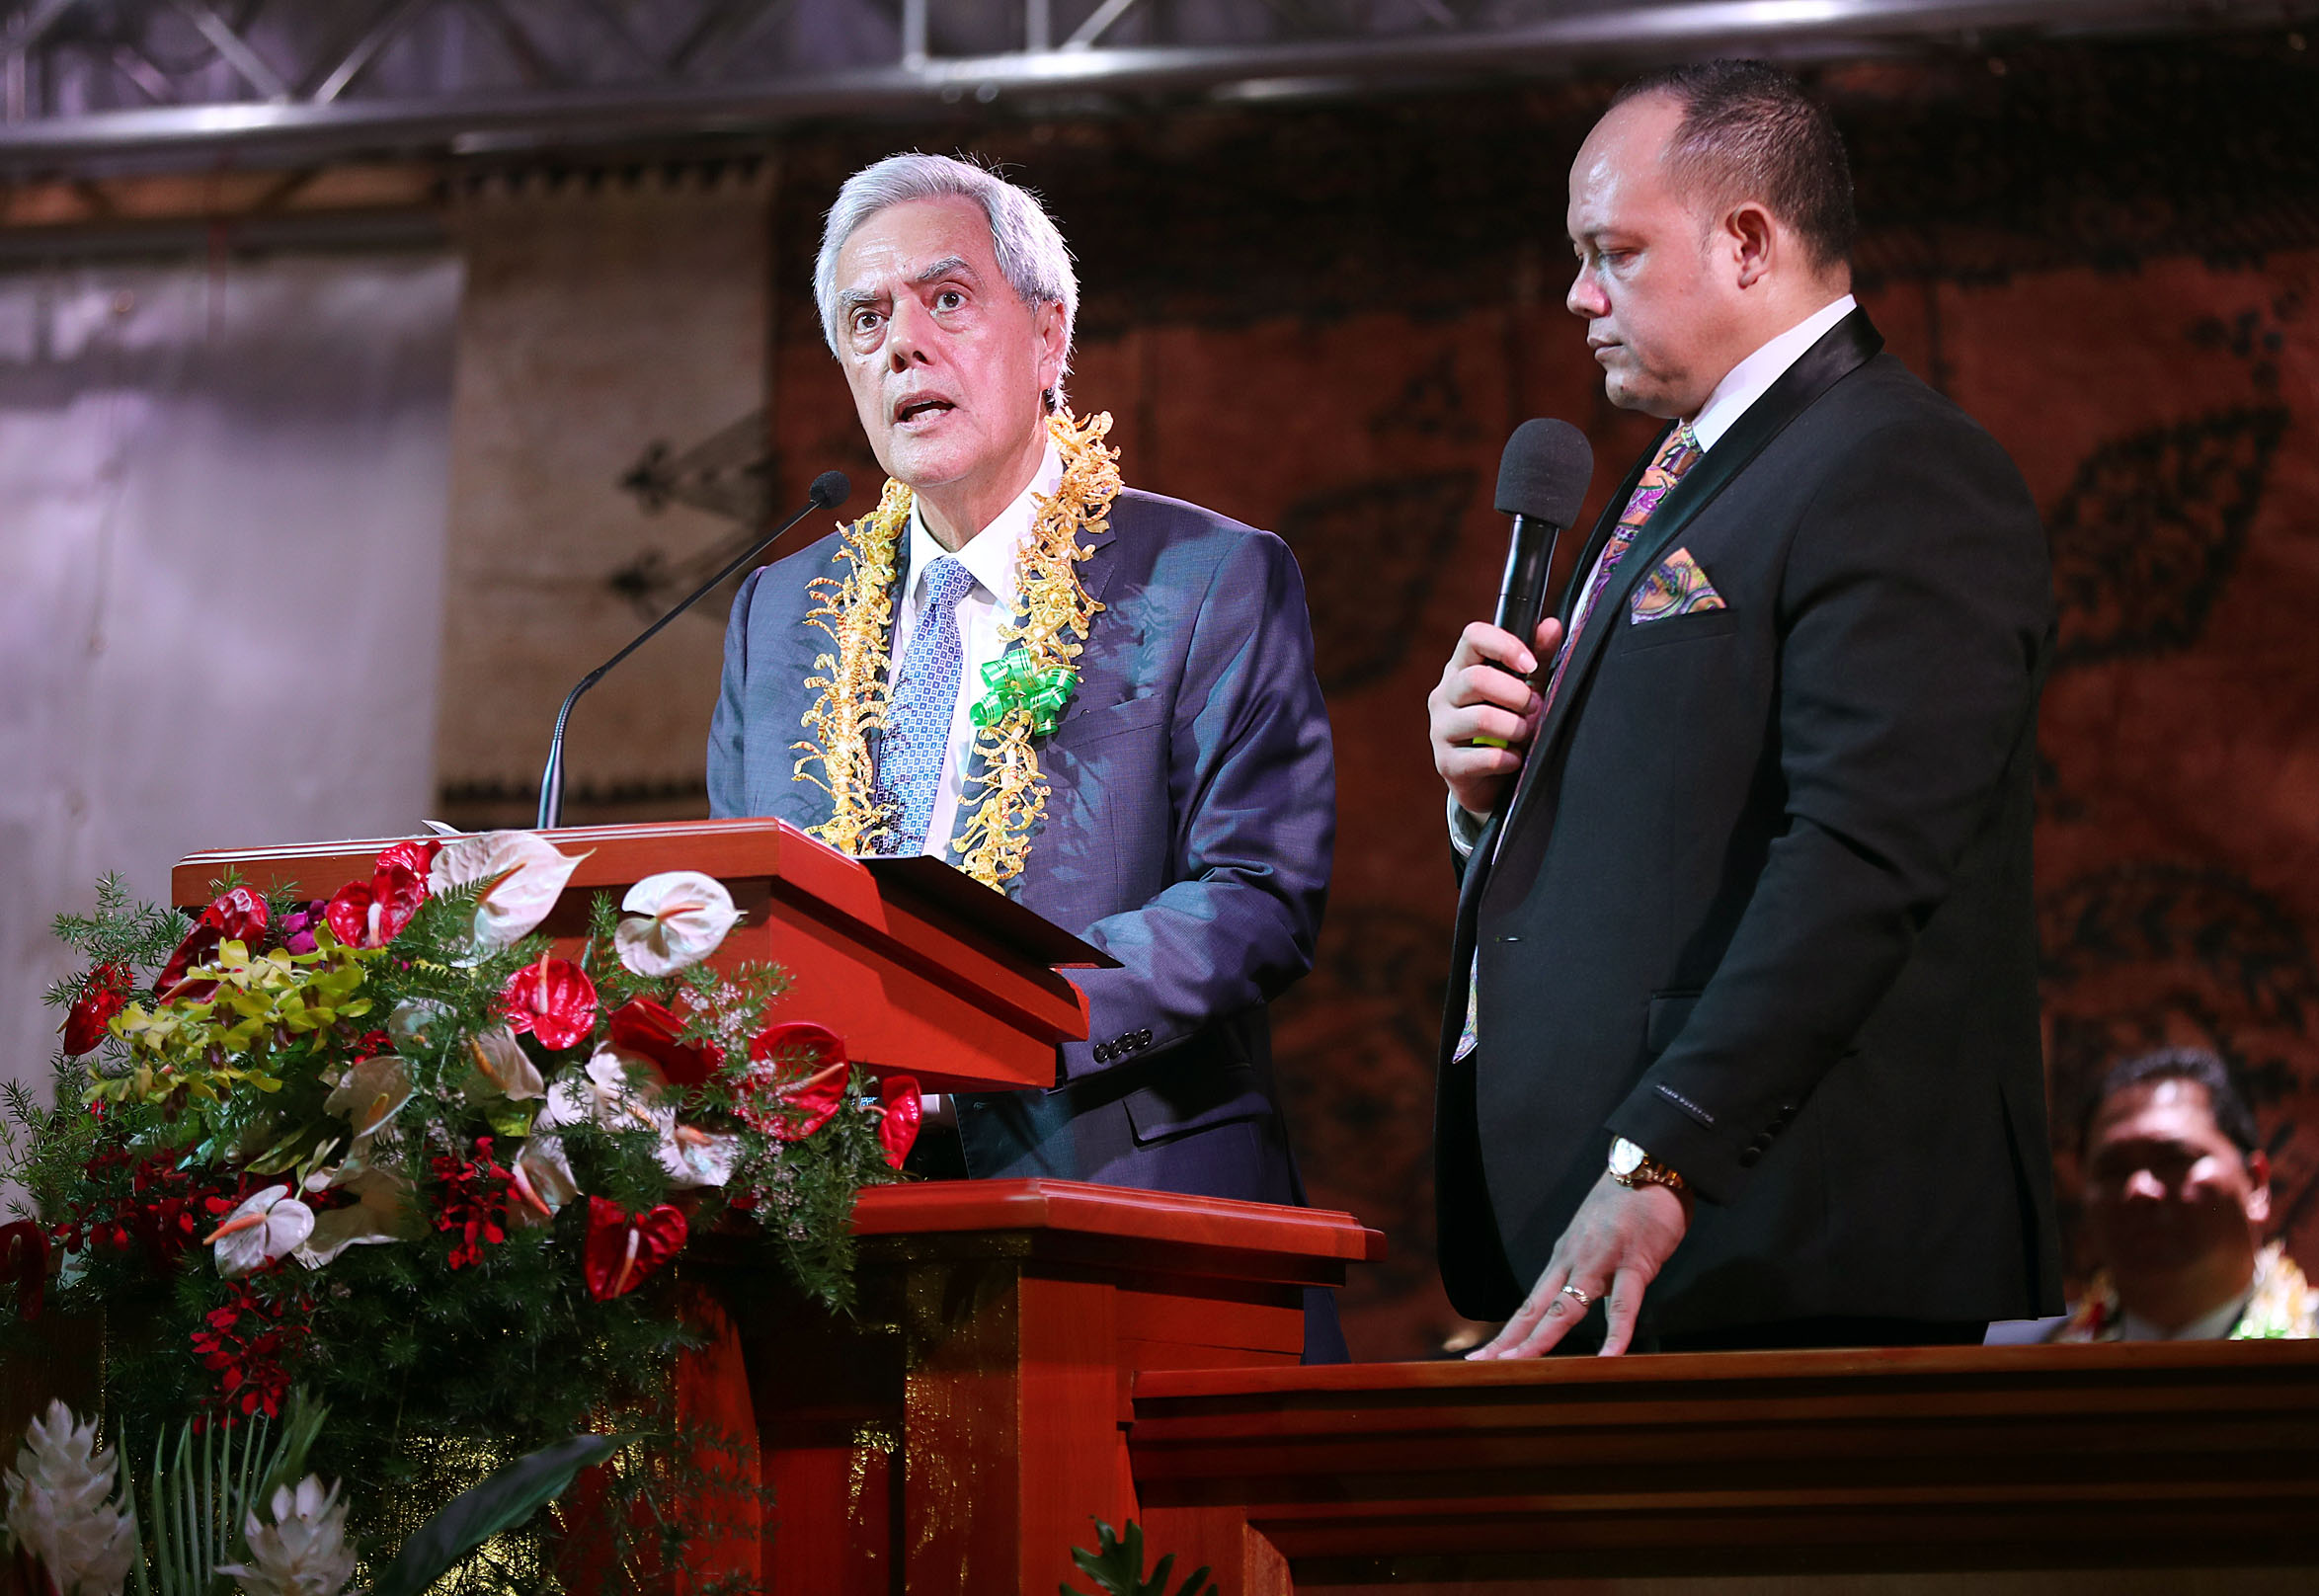 Elder O. Vincent Haleck, a General Authority Seventy and president of the Church's Pacific Area, speaks with an interpreter at right during a devotional with President Russell M. Nelson of The Church of Jesus Christ of Latter-day Saints in Apia, Samoa, on Saturday, May 18, 2019.